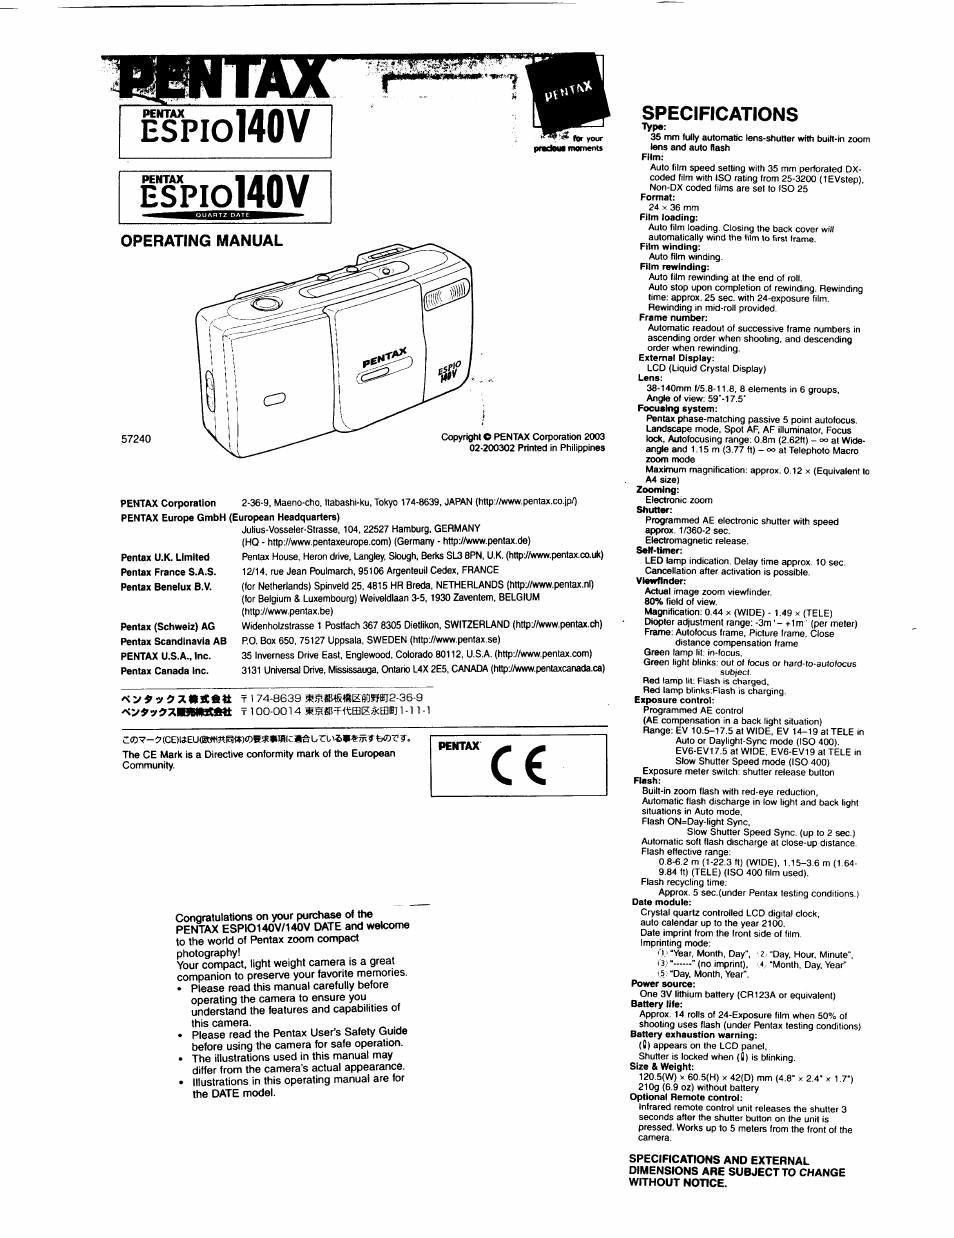 pentax espio 140v user manual 6 pages rh manualsdir com pentax espio 140m manual pentax espio 140v manual